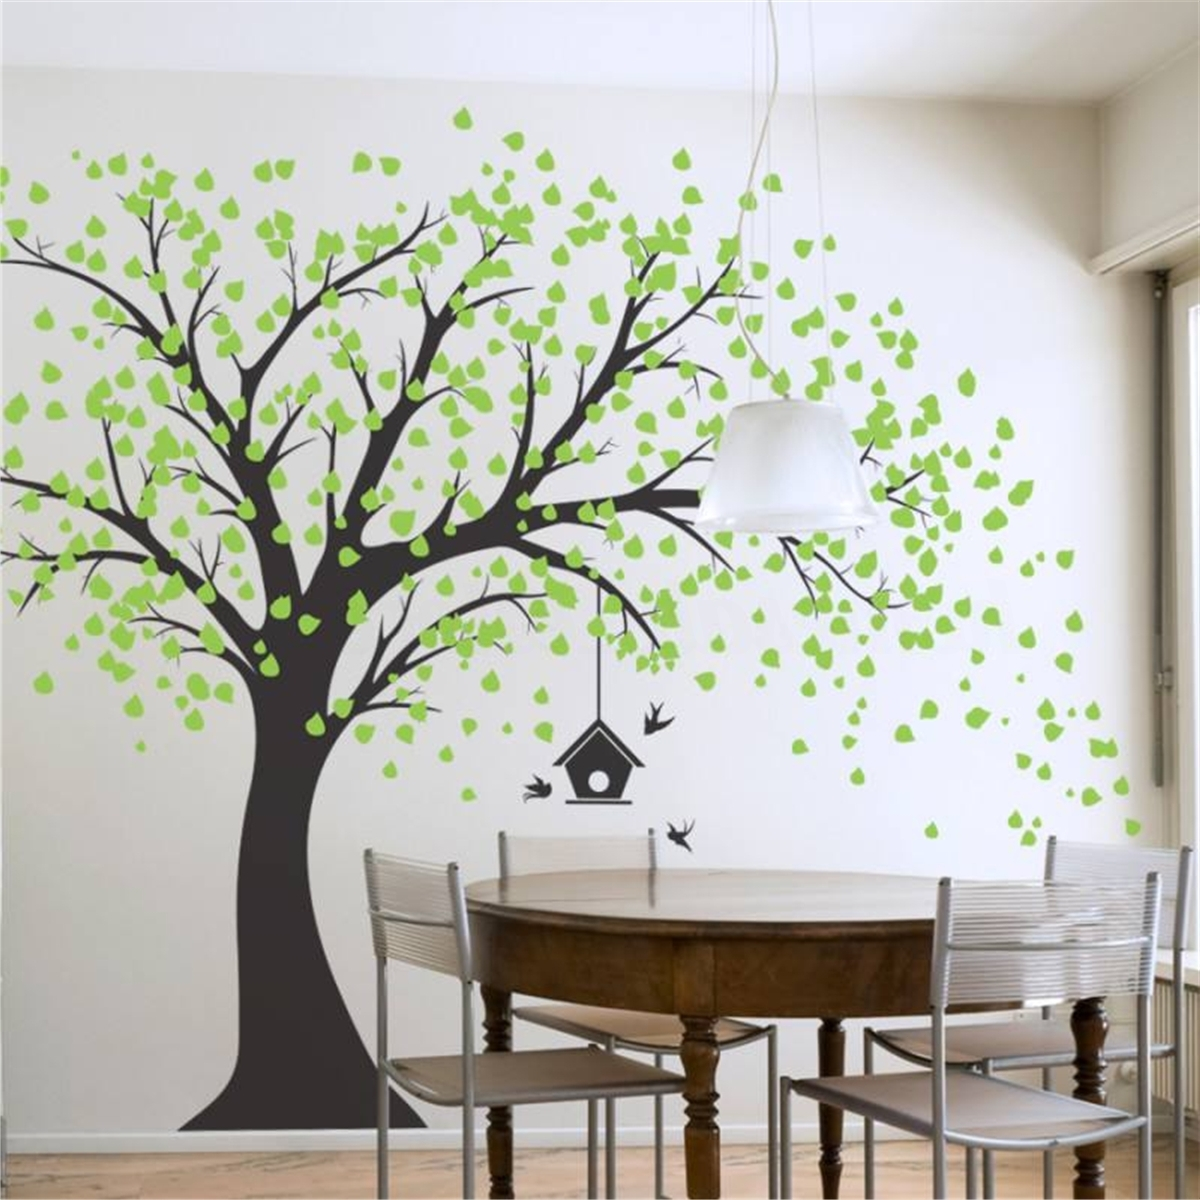 Popular 210Cmx180Cm Diy Tree Wall Paper Art Wall Sticker Home Bedroom Bbay Intended For Wall Tree Art (View 7 of 15)